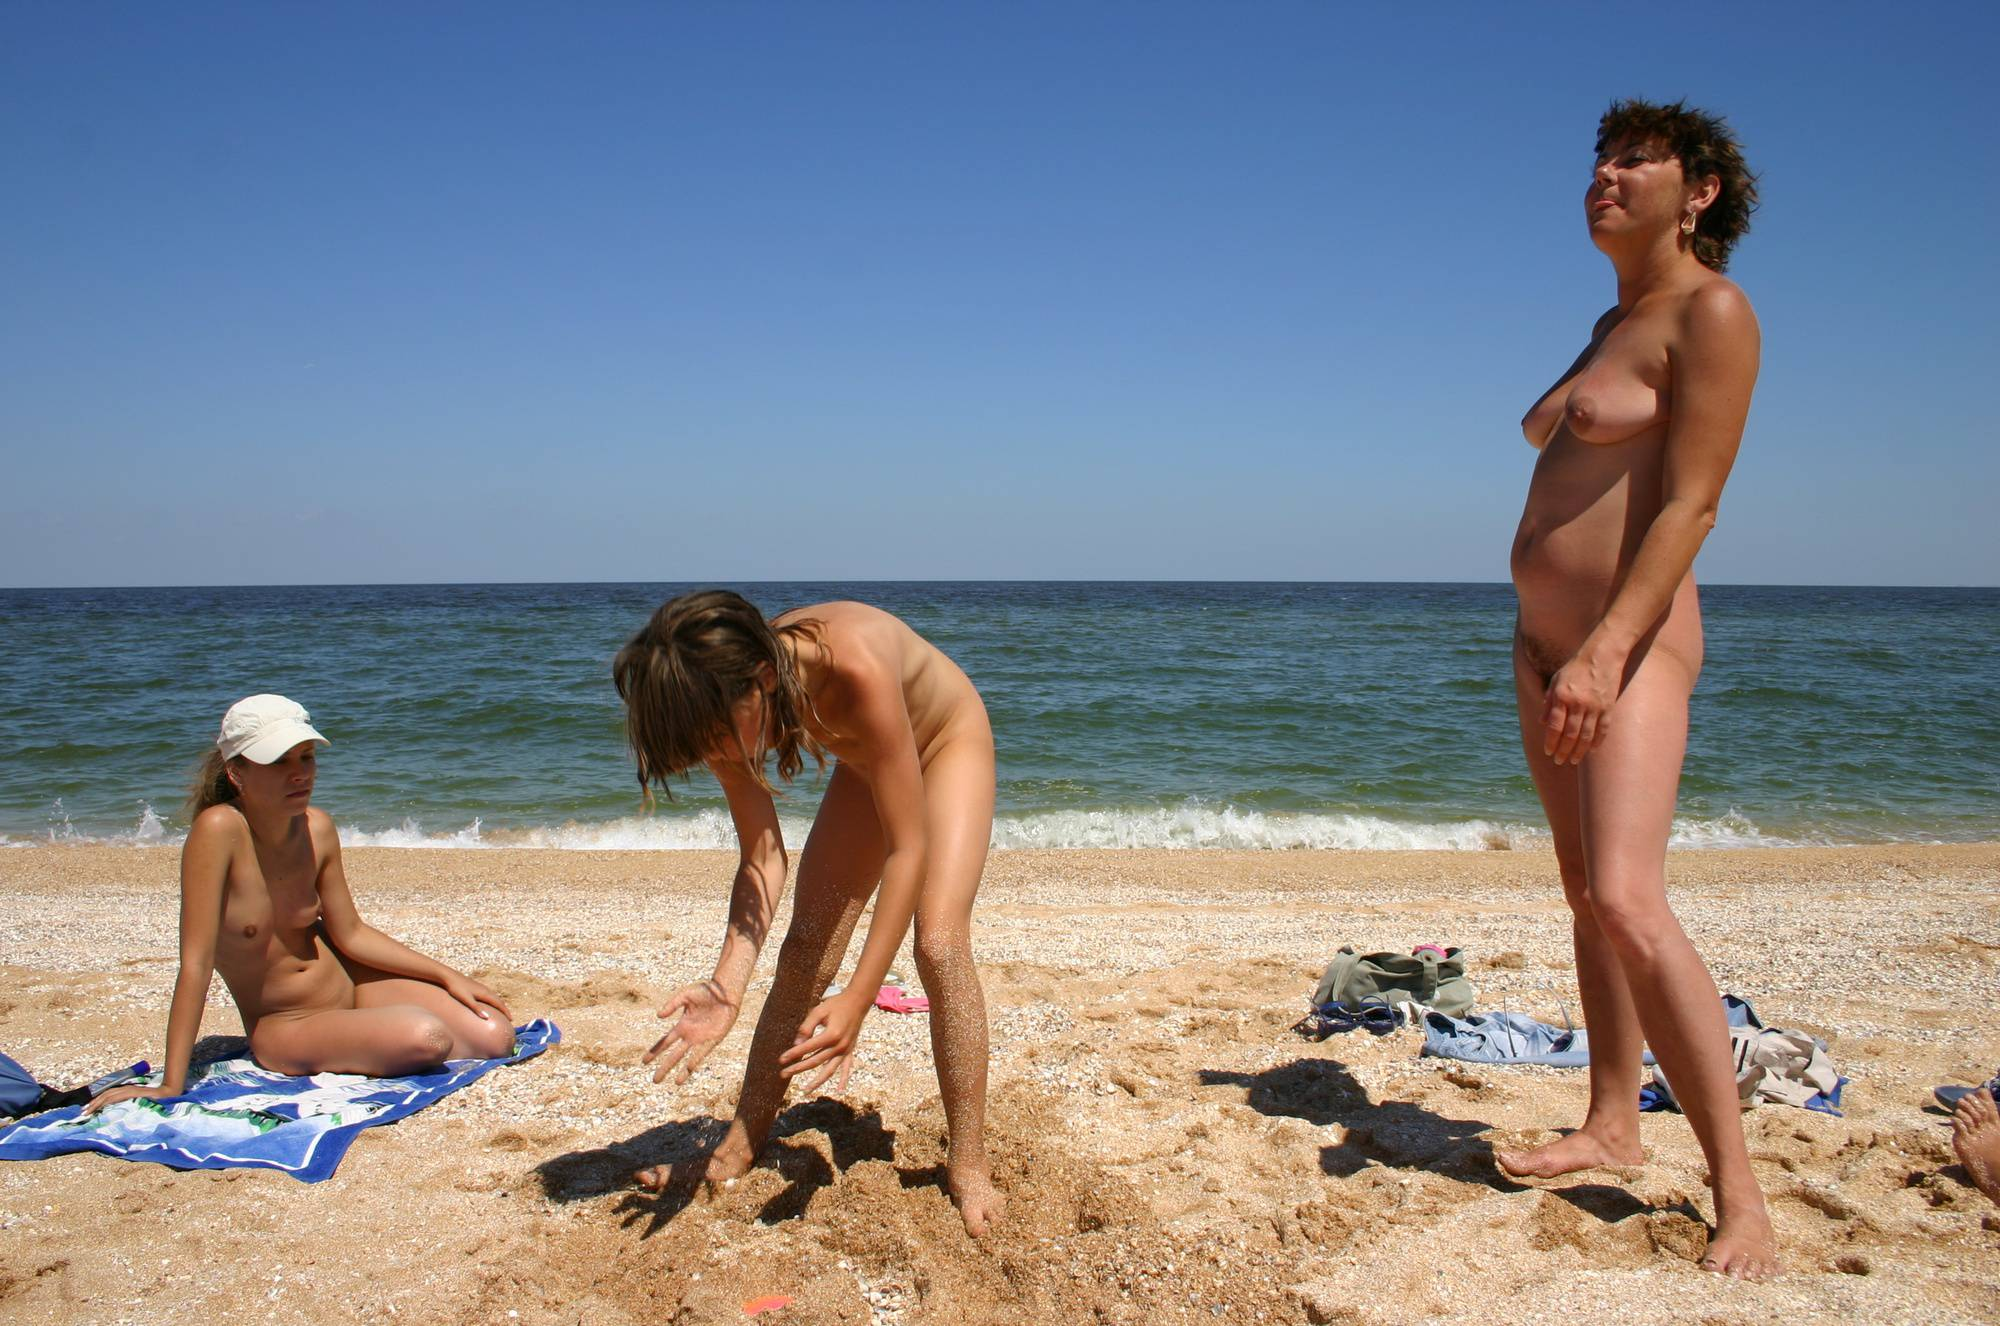 Nudist Gallery Naturist Beach Sand Kings - 1